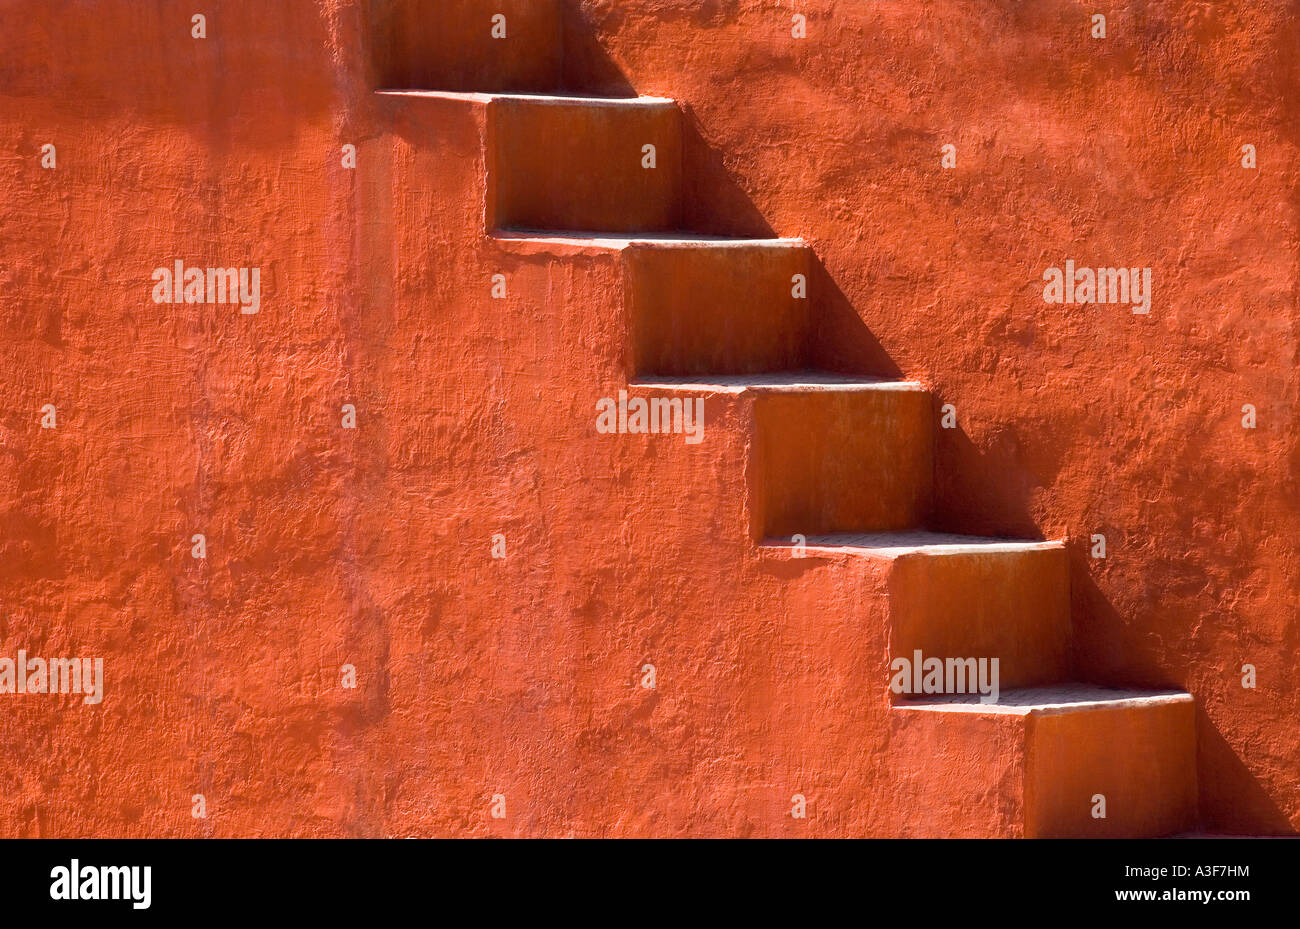 Étapes sur un bâtiment, Jantar Mantar, New Delhi, Inde Photo Stock